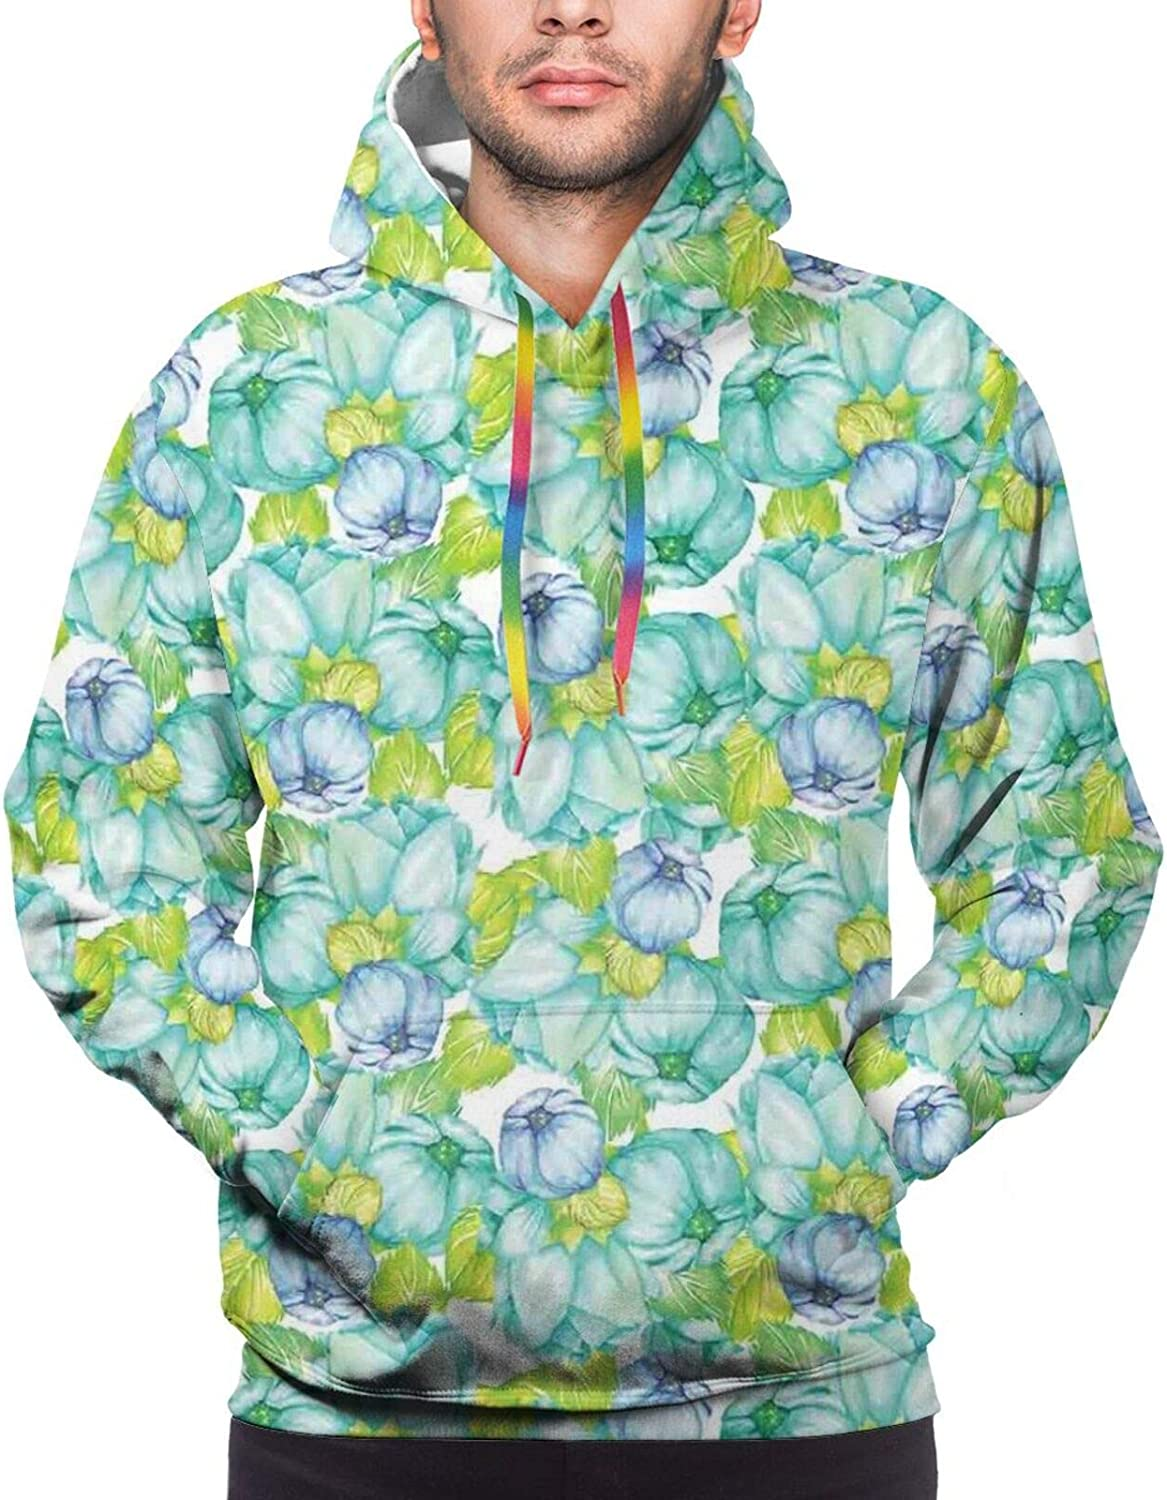 Men's Hoodies Sweatshirts,Blooming Dog Roses with Leafy Stems Art Nouveau Inspirations